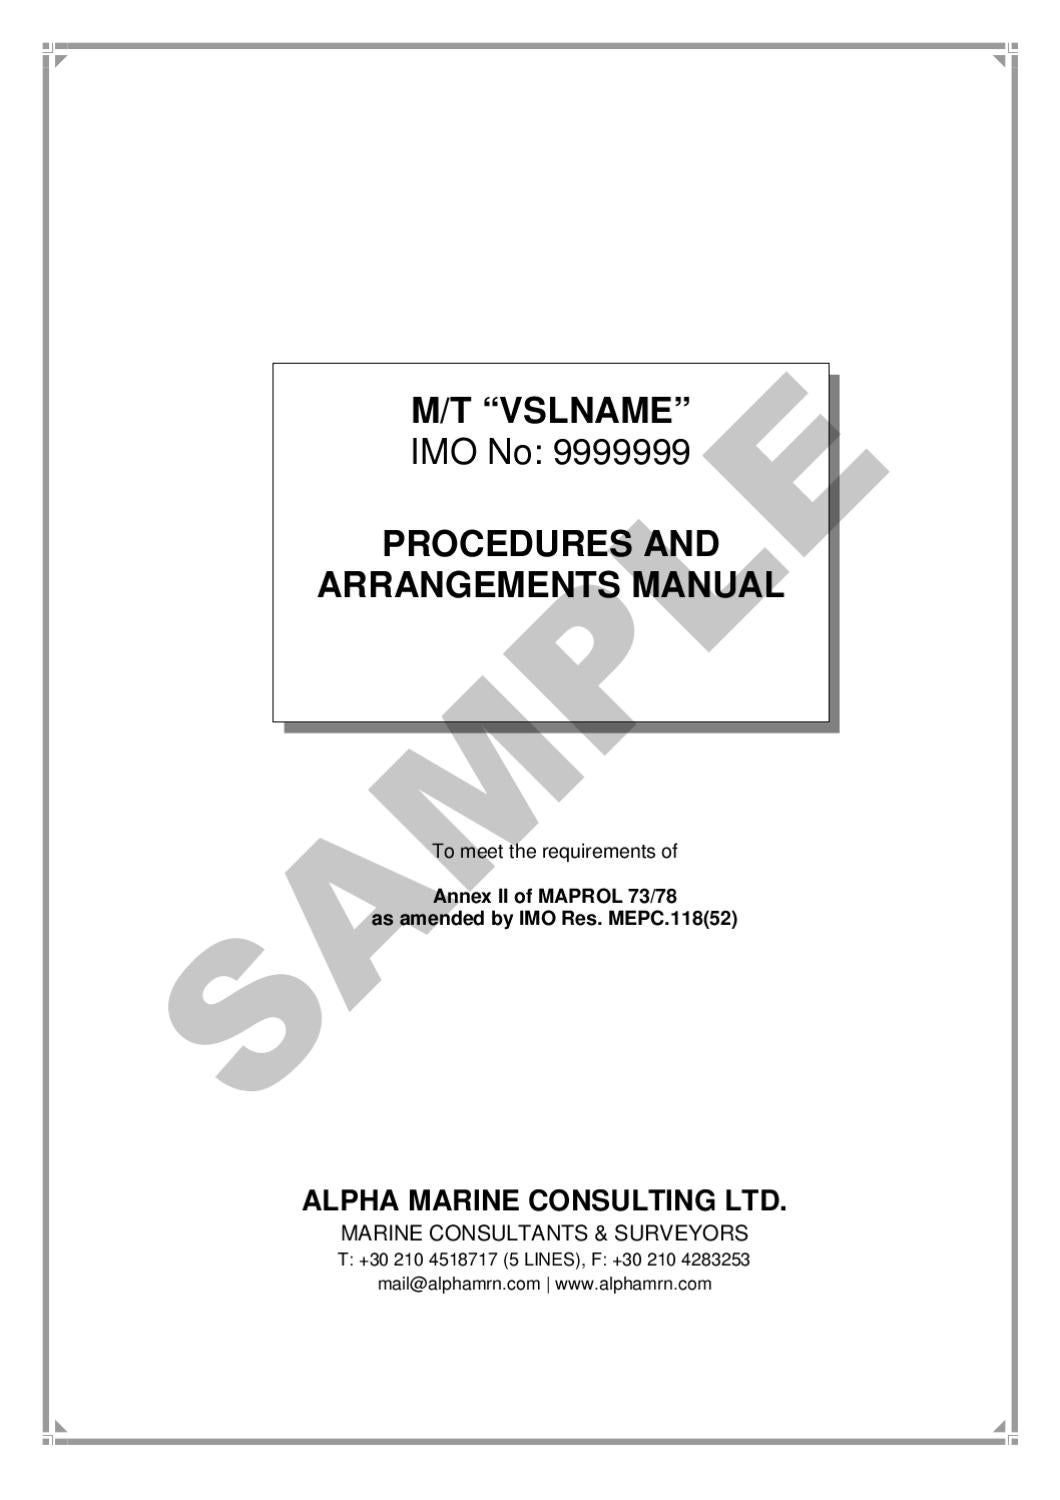 marpol annex 2 p&a manual